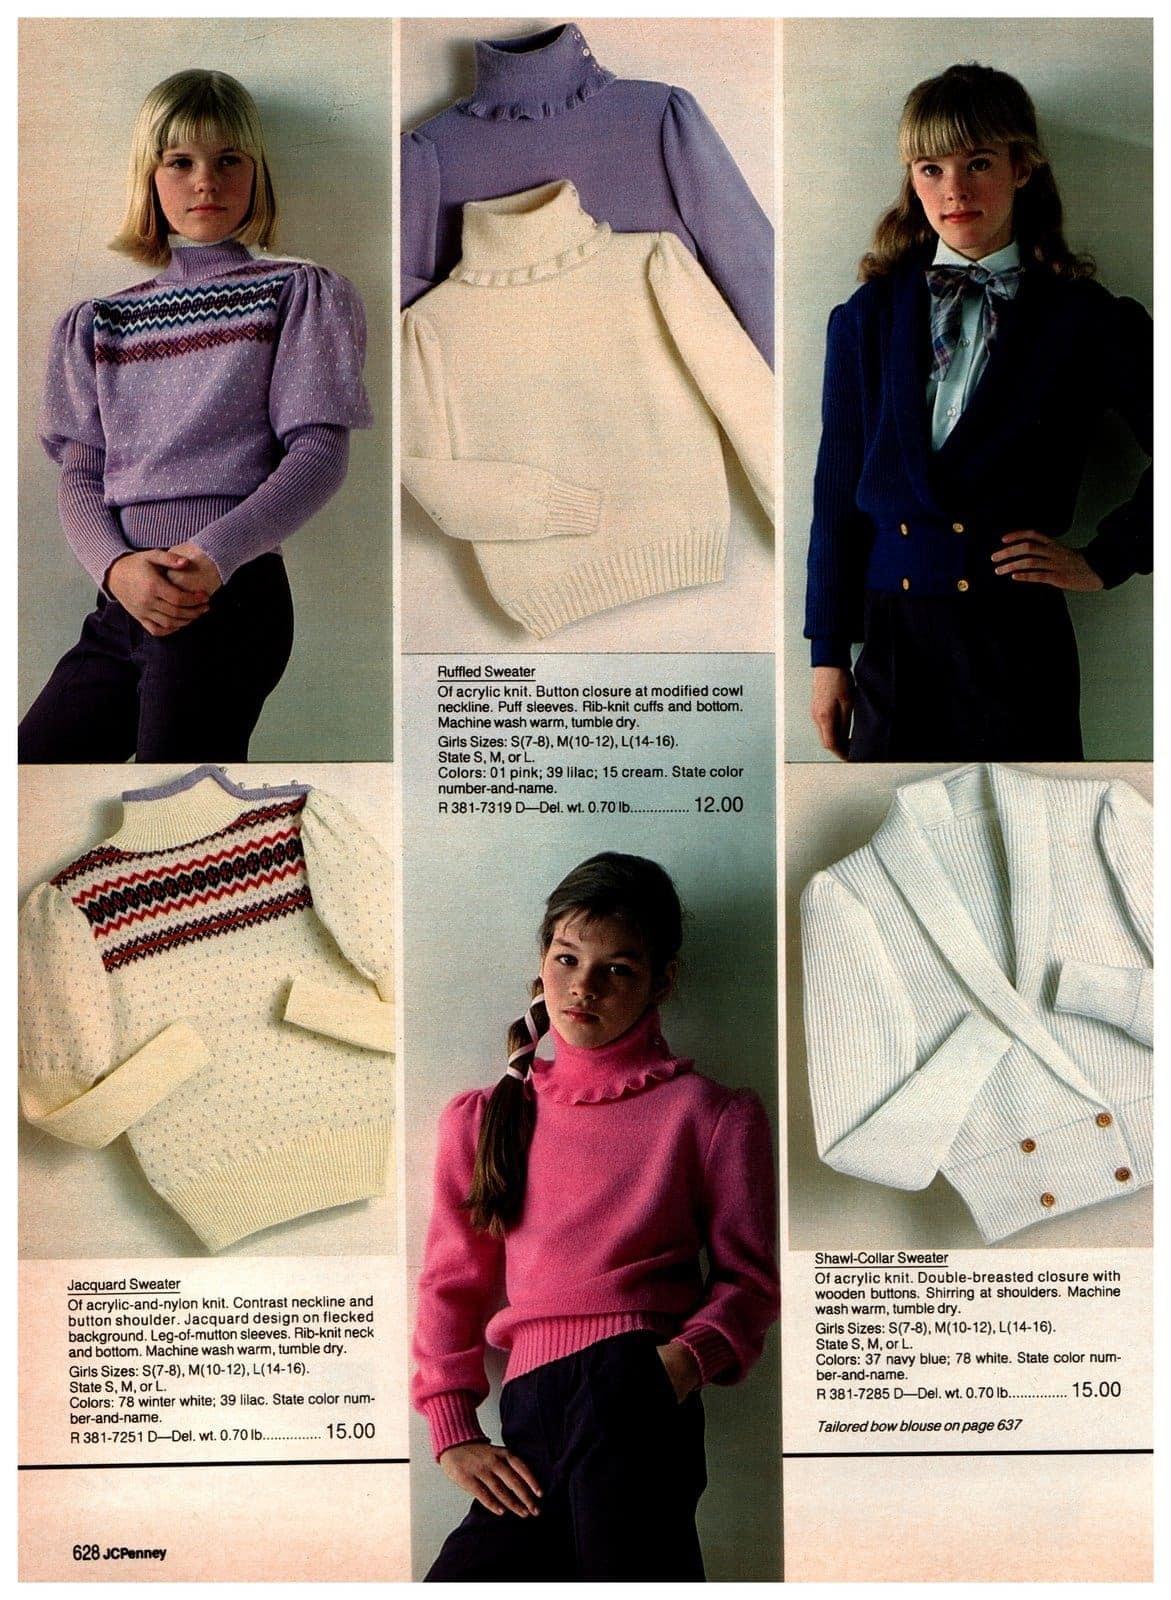 Jacquard sweaters with leg of mutton sleeves, ruffled sweaters, and shawl-collar sweaters for girls